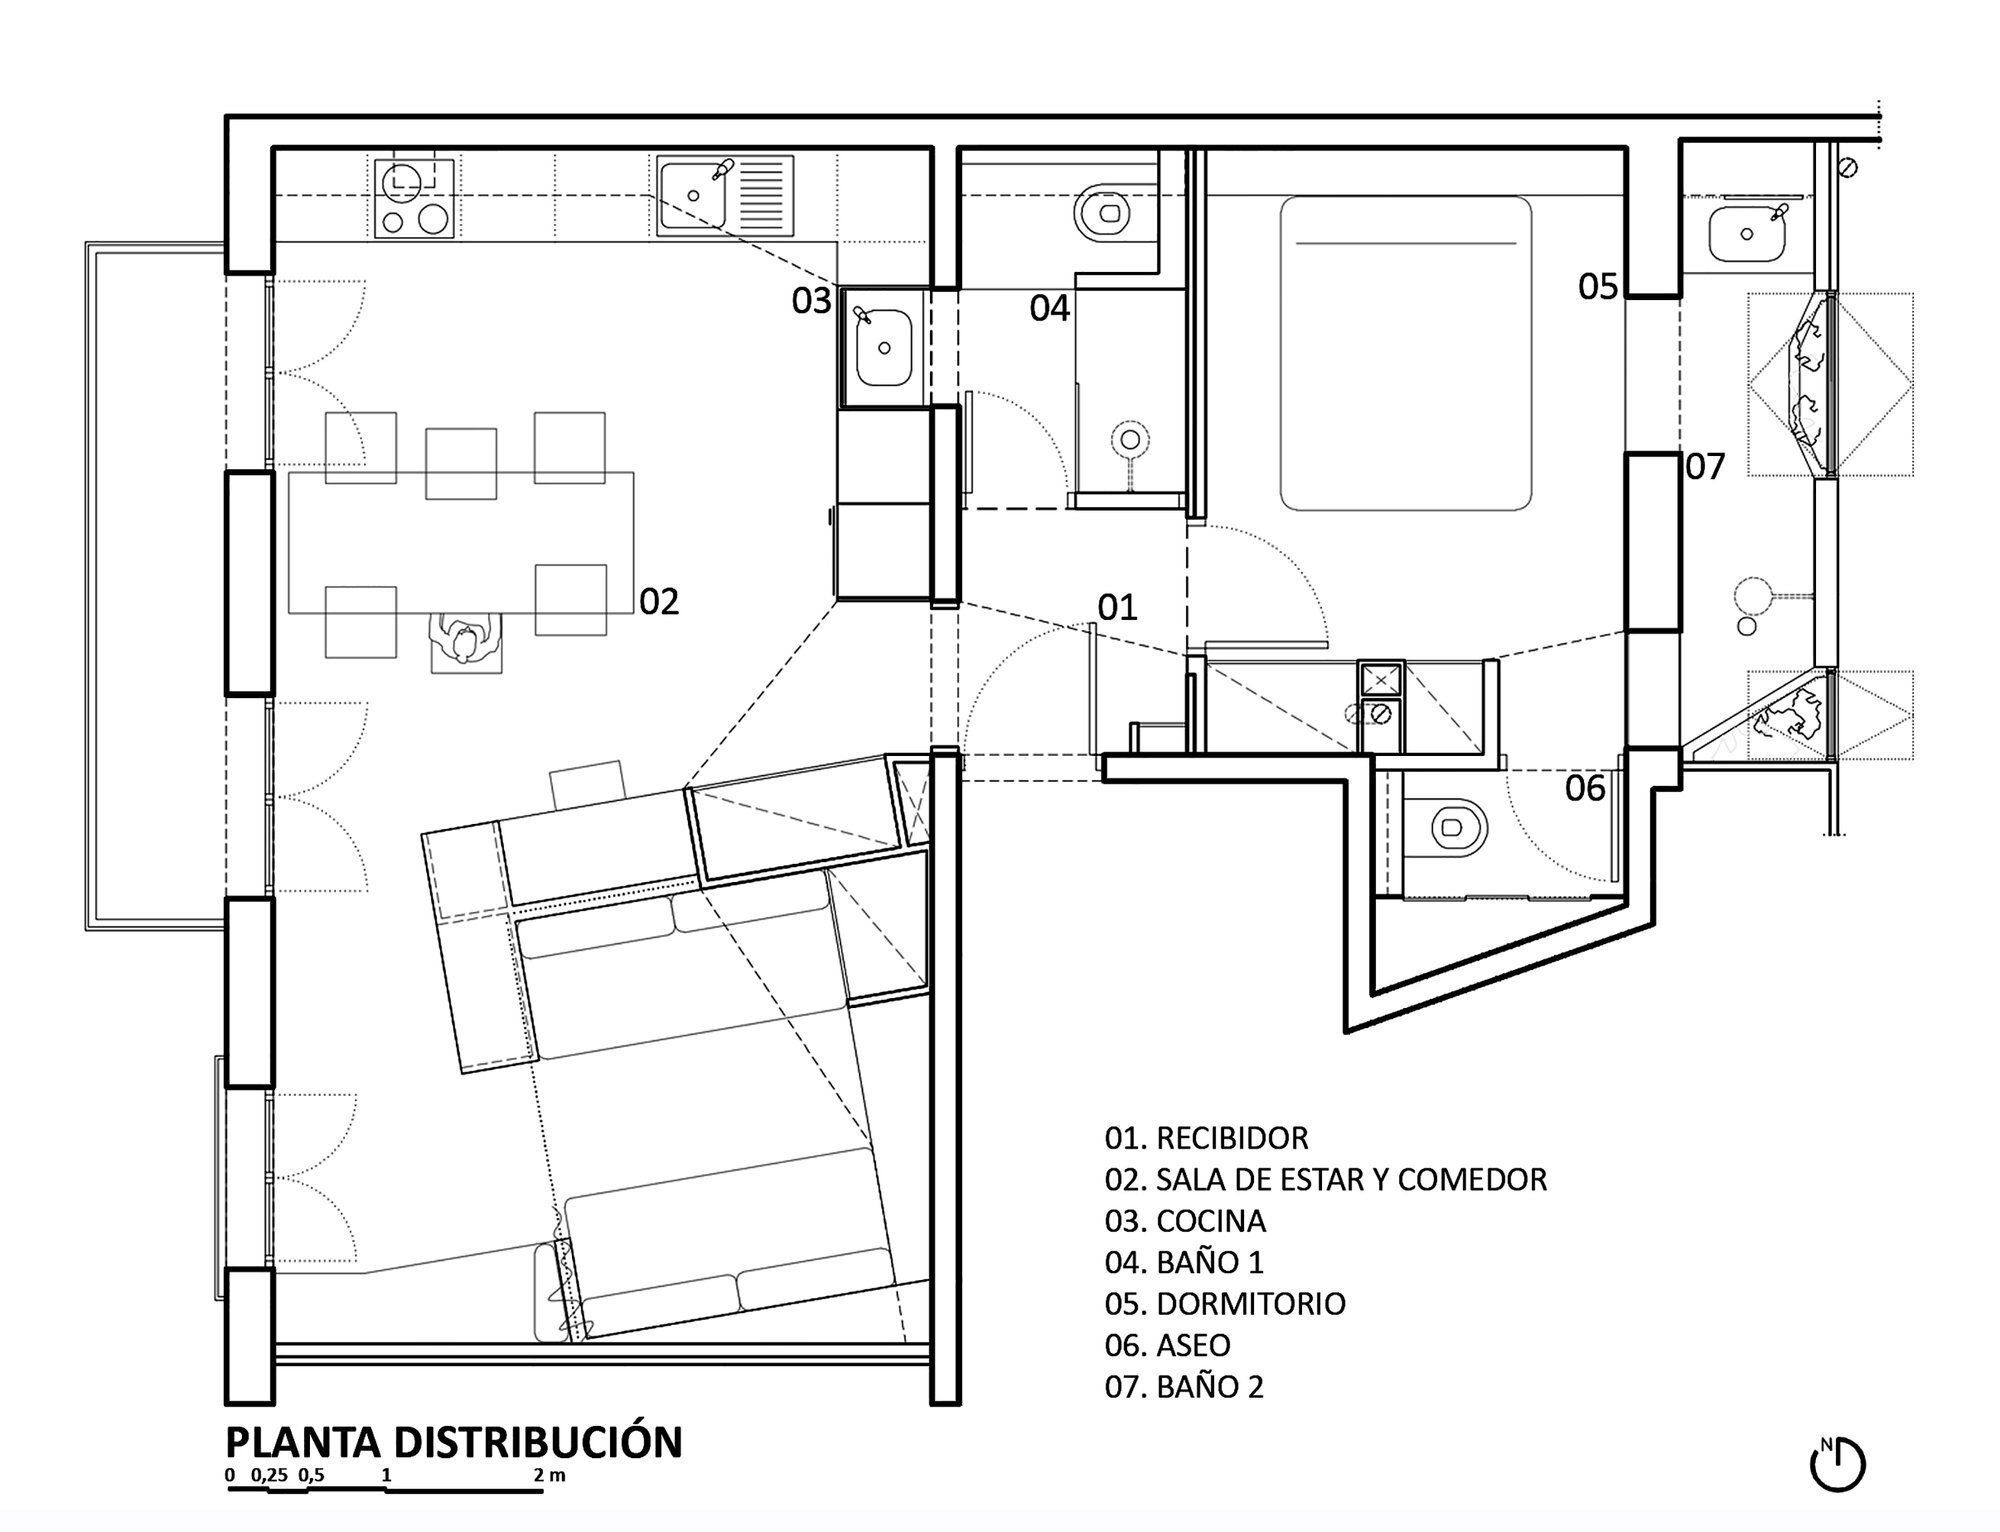 Apartment Pujades11 - Small Apartment - Miel Arquitectos + Studio P10 - Spain - Floor Plan - Humble Homes